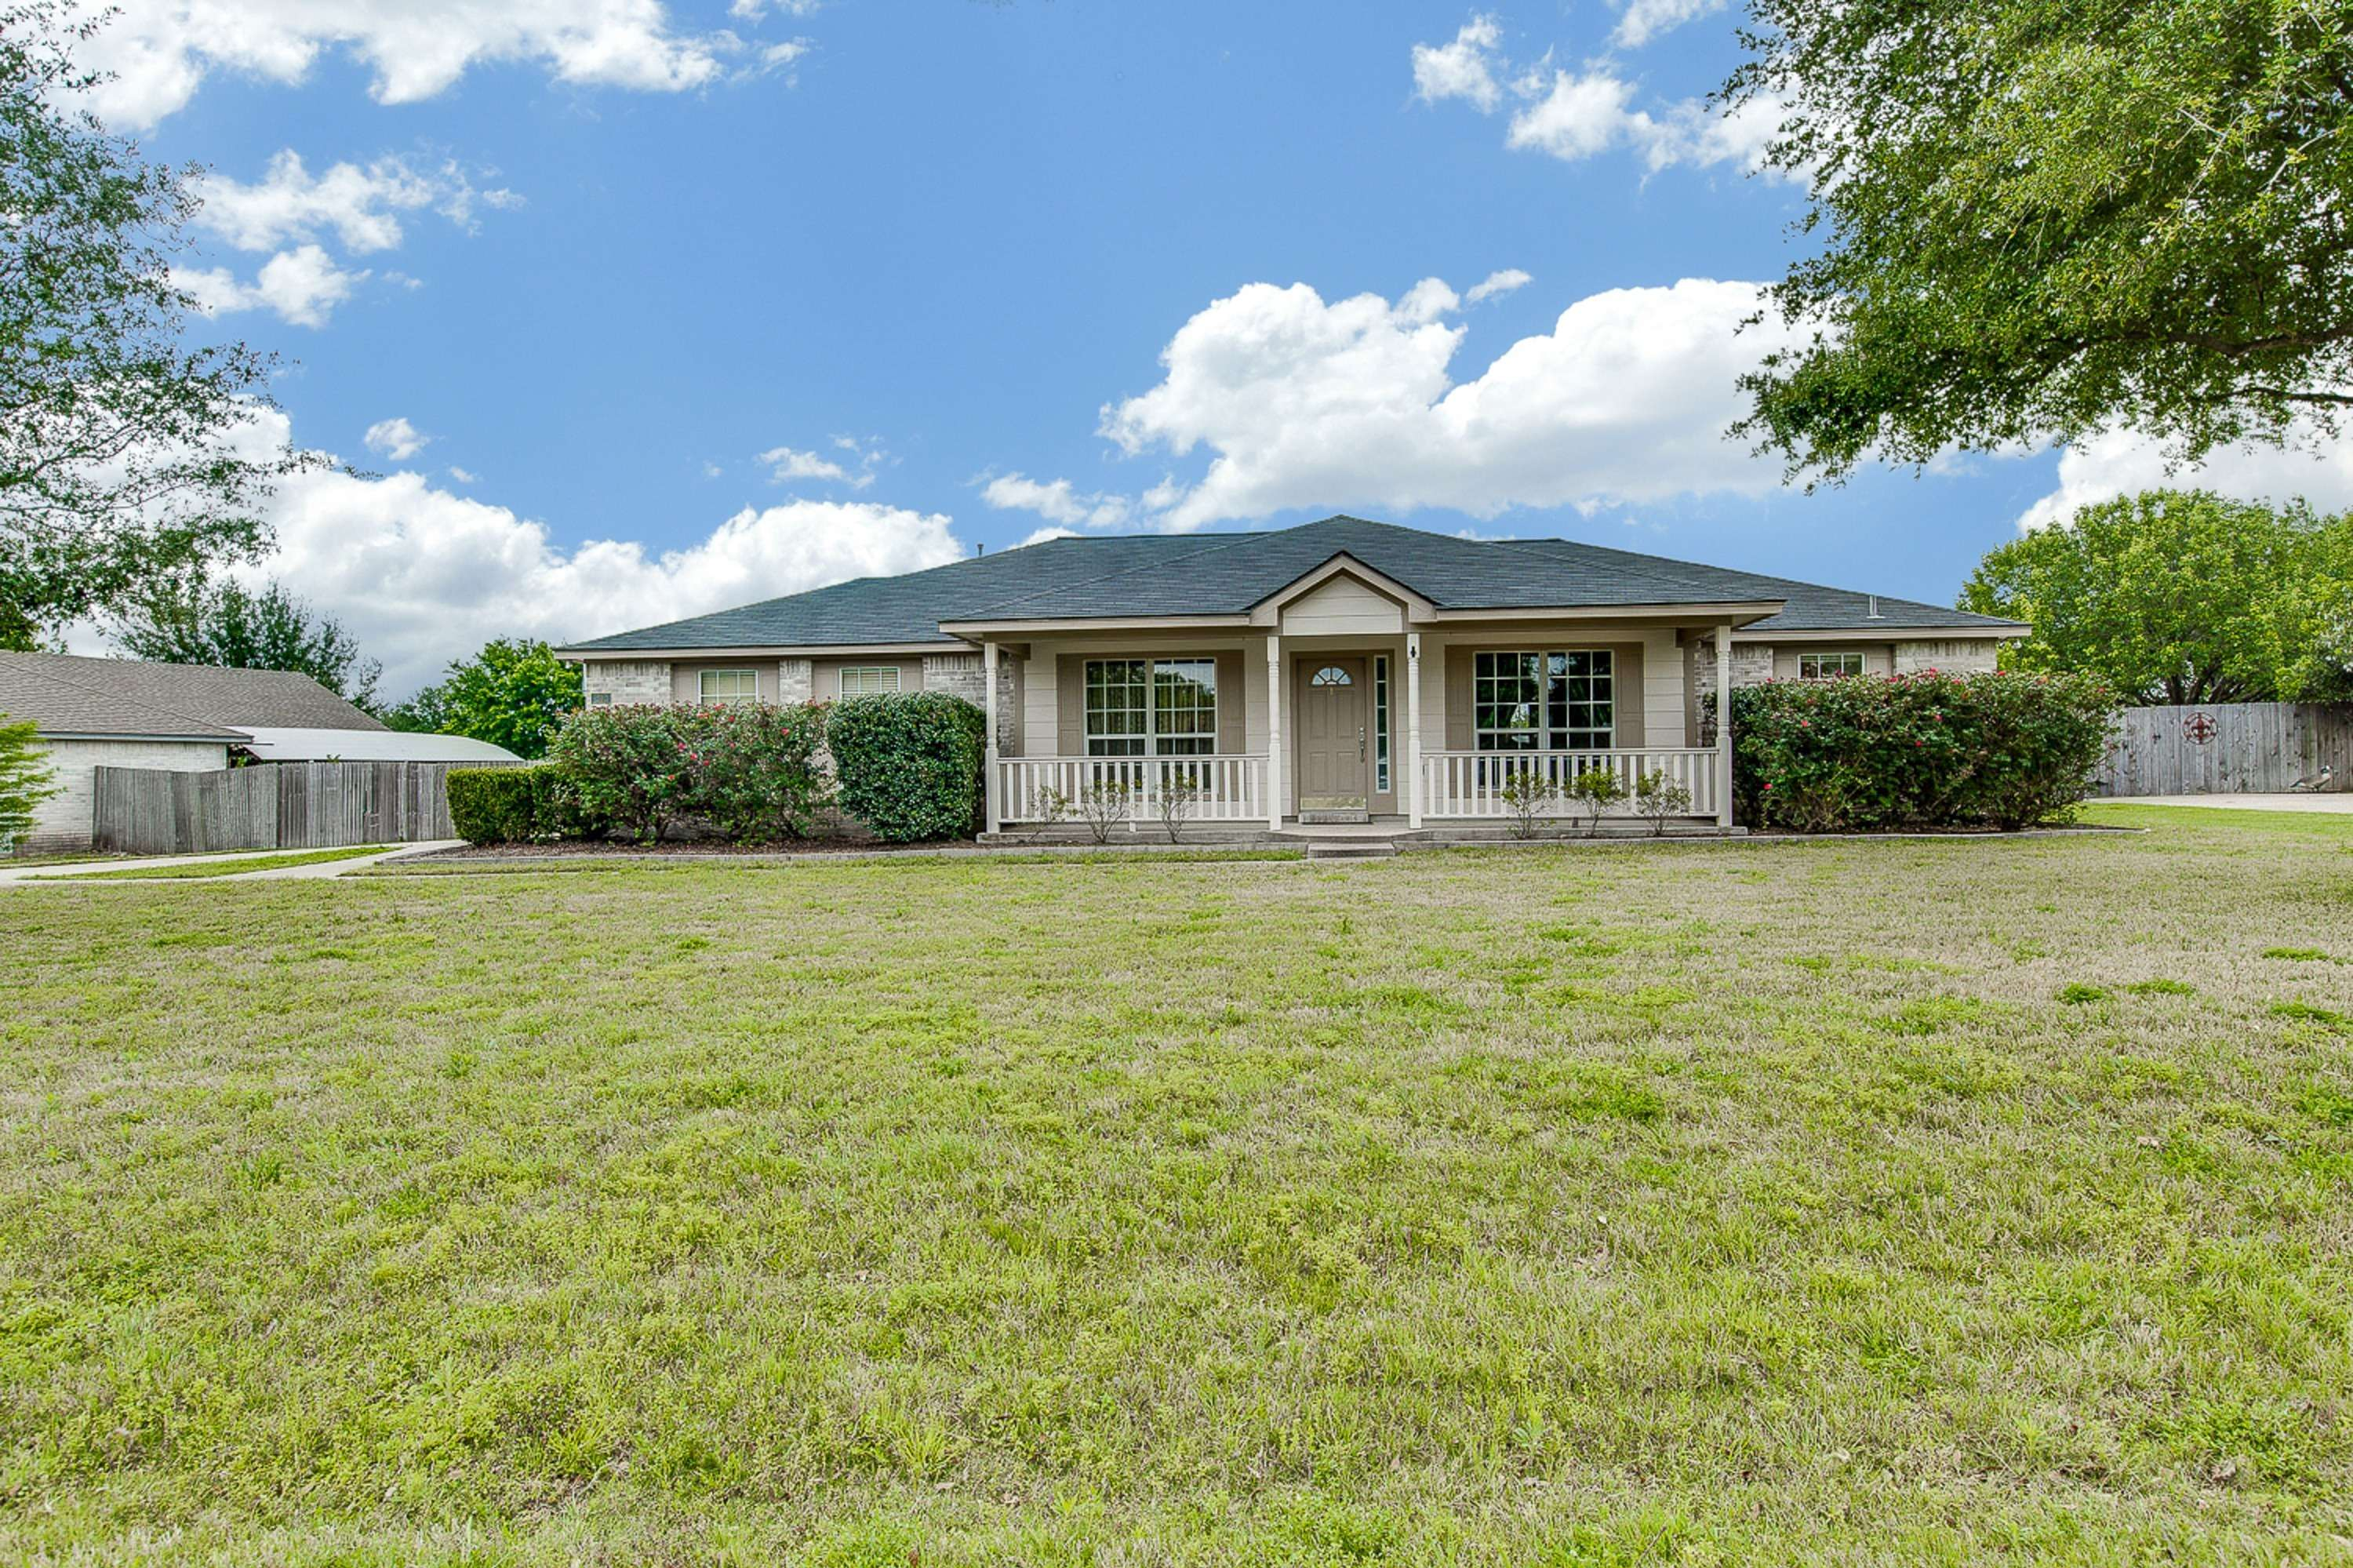 Round Rock Tx home on acreage